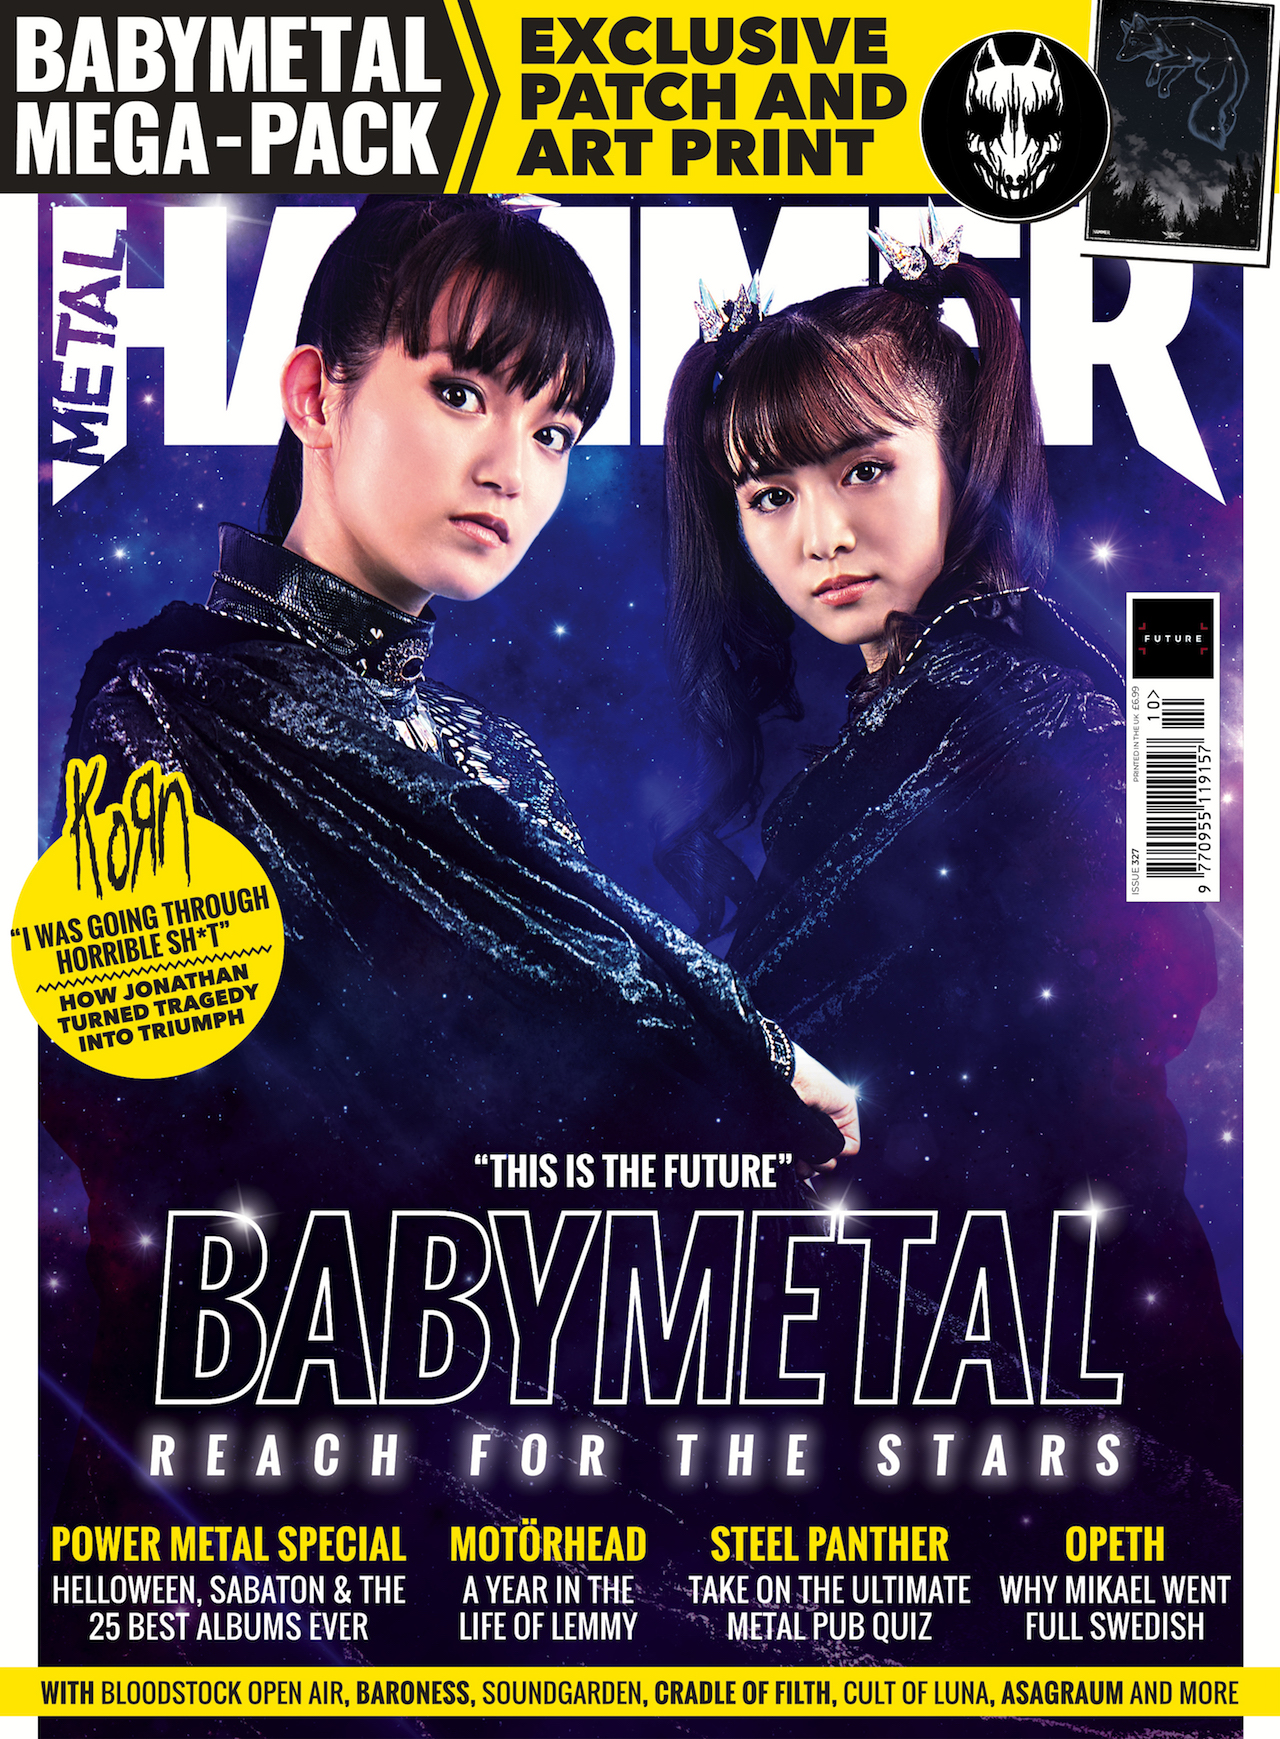 Babymetal are reaching for the stars in the new issue of Metal Hammer, out now! | Louder